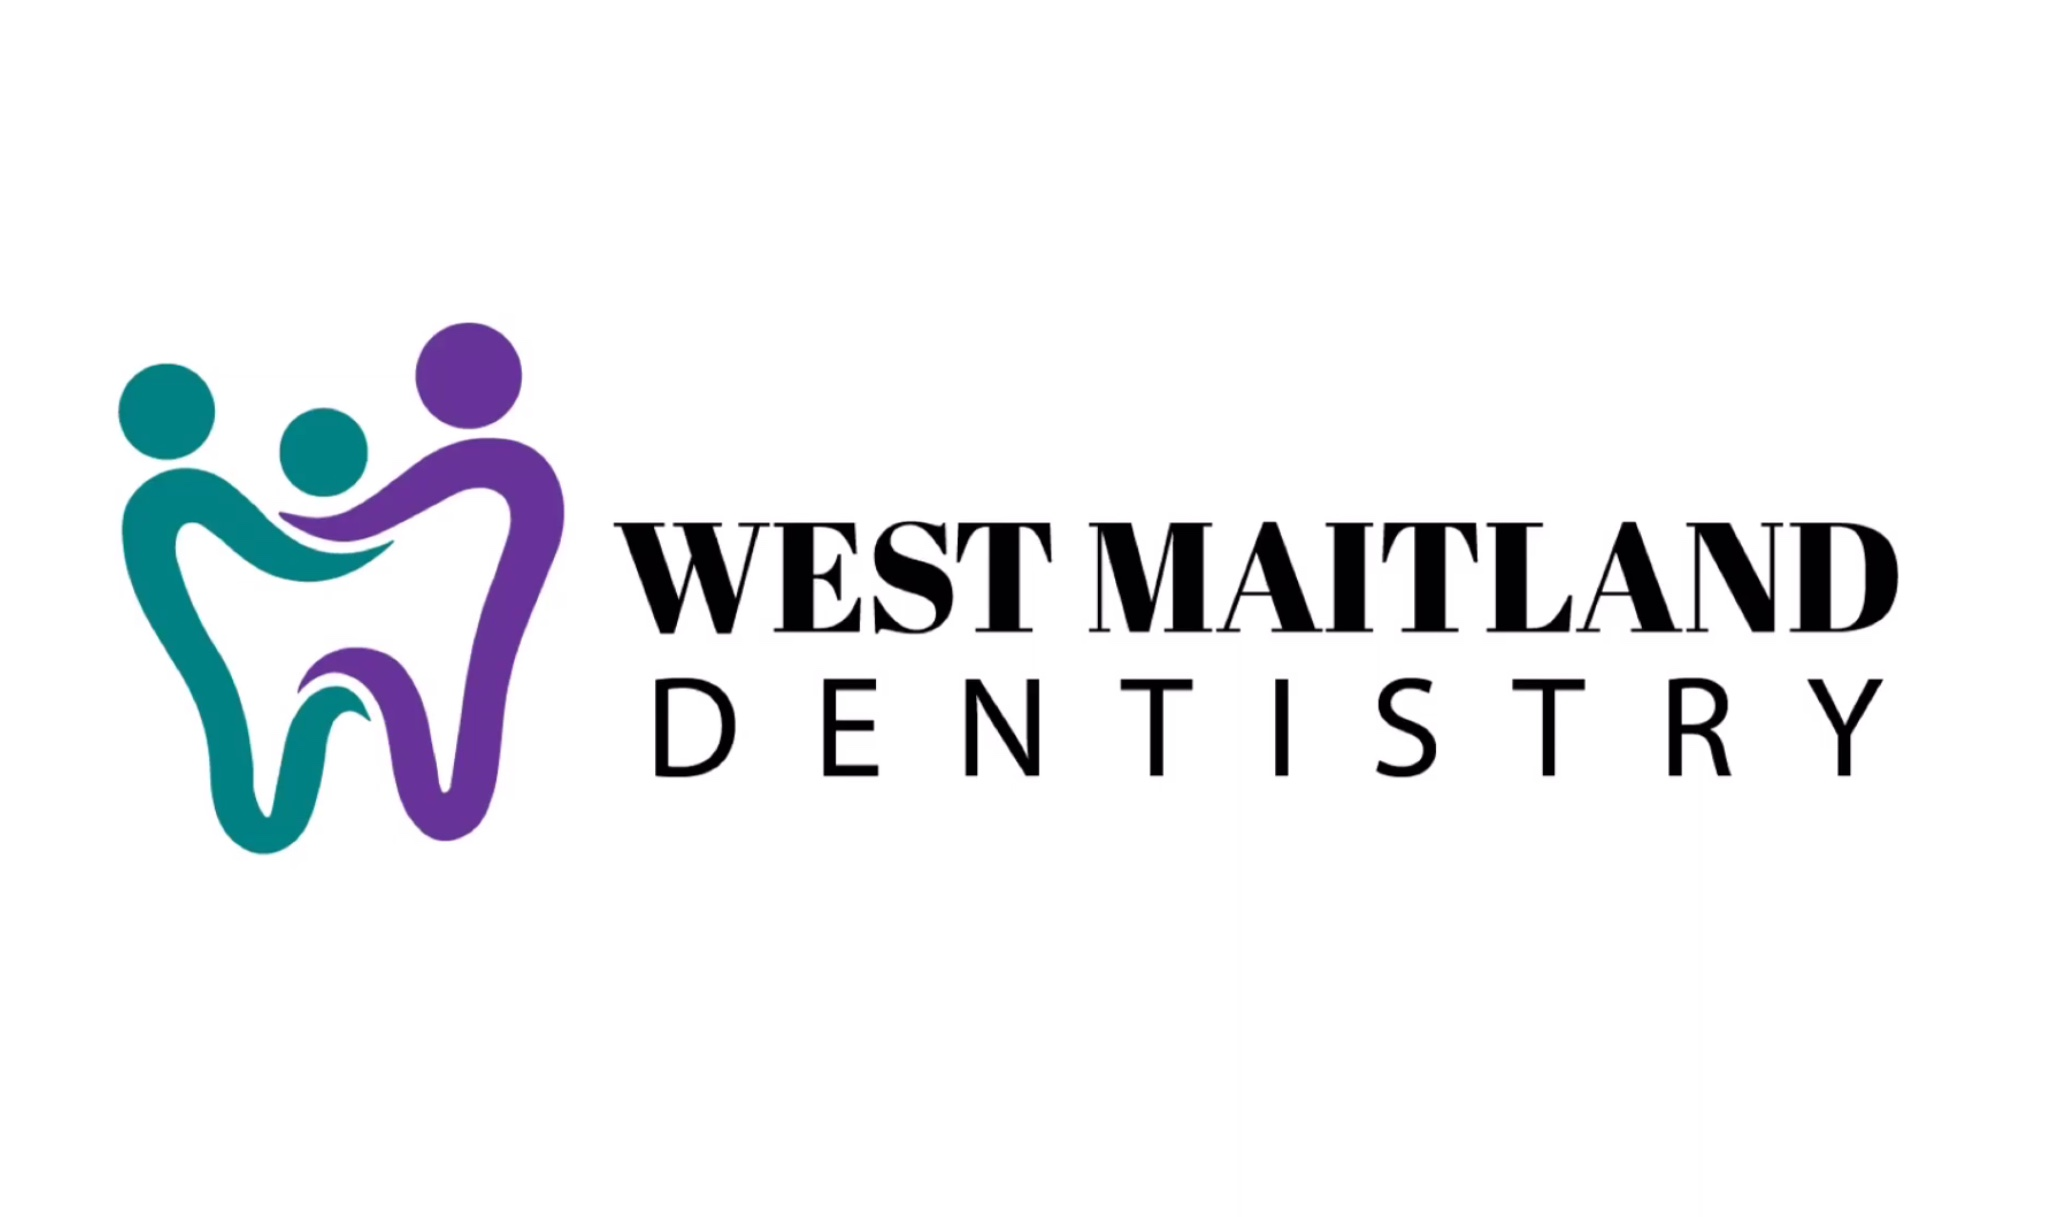 West Maitland Dentistry JPEG